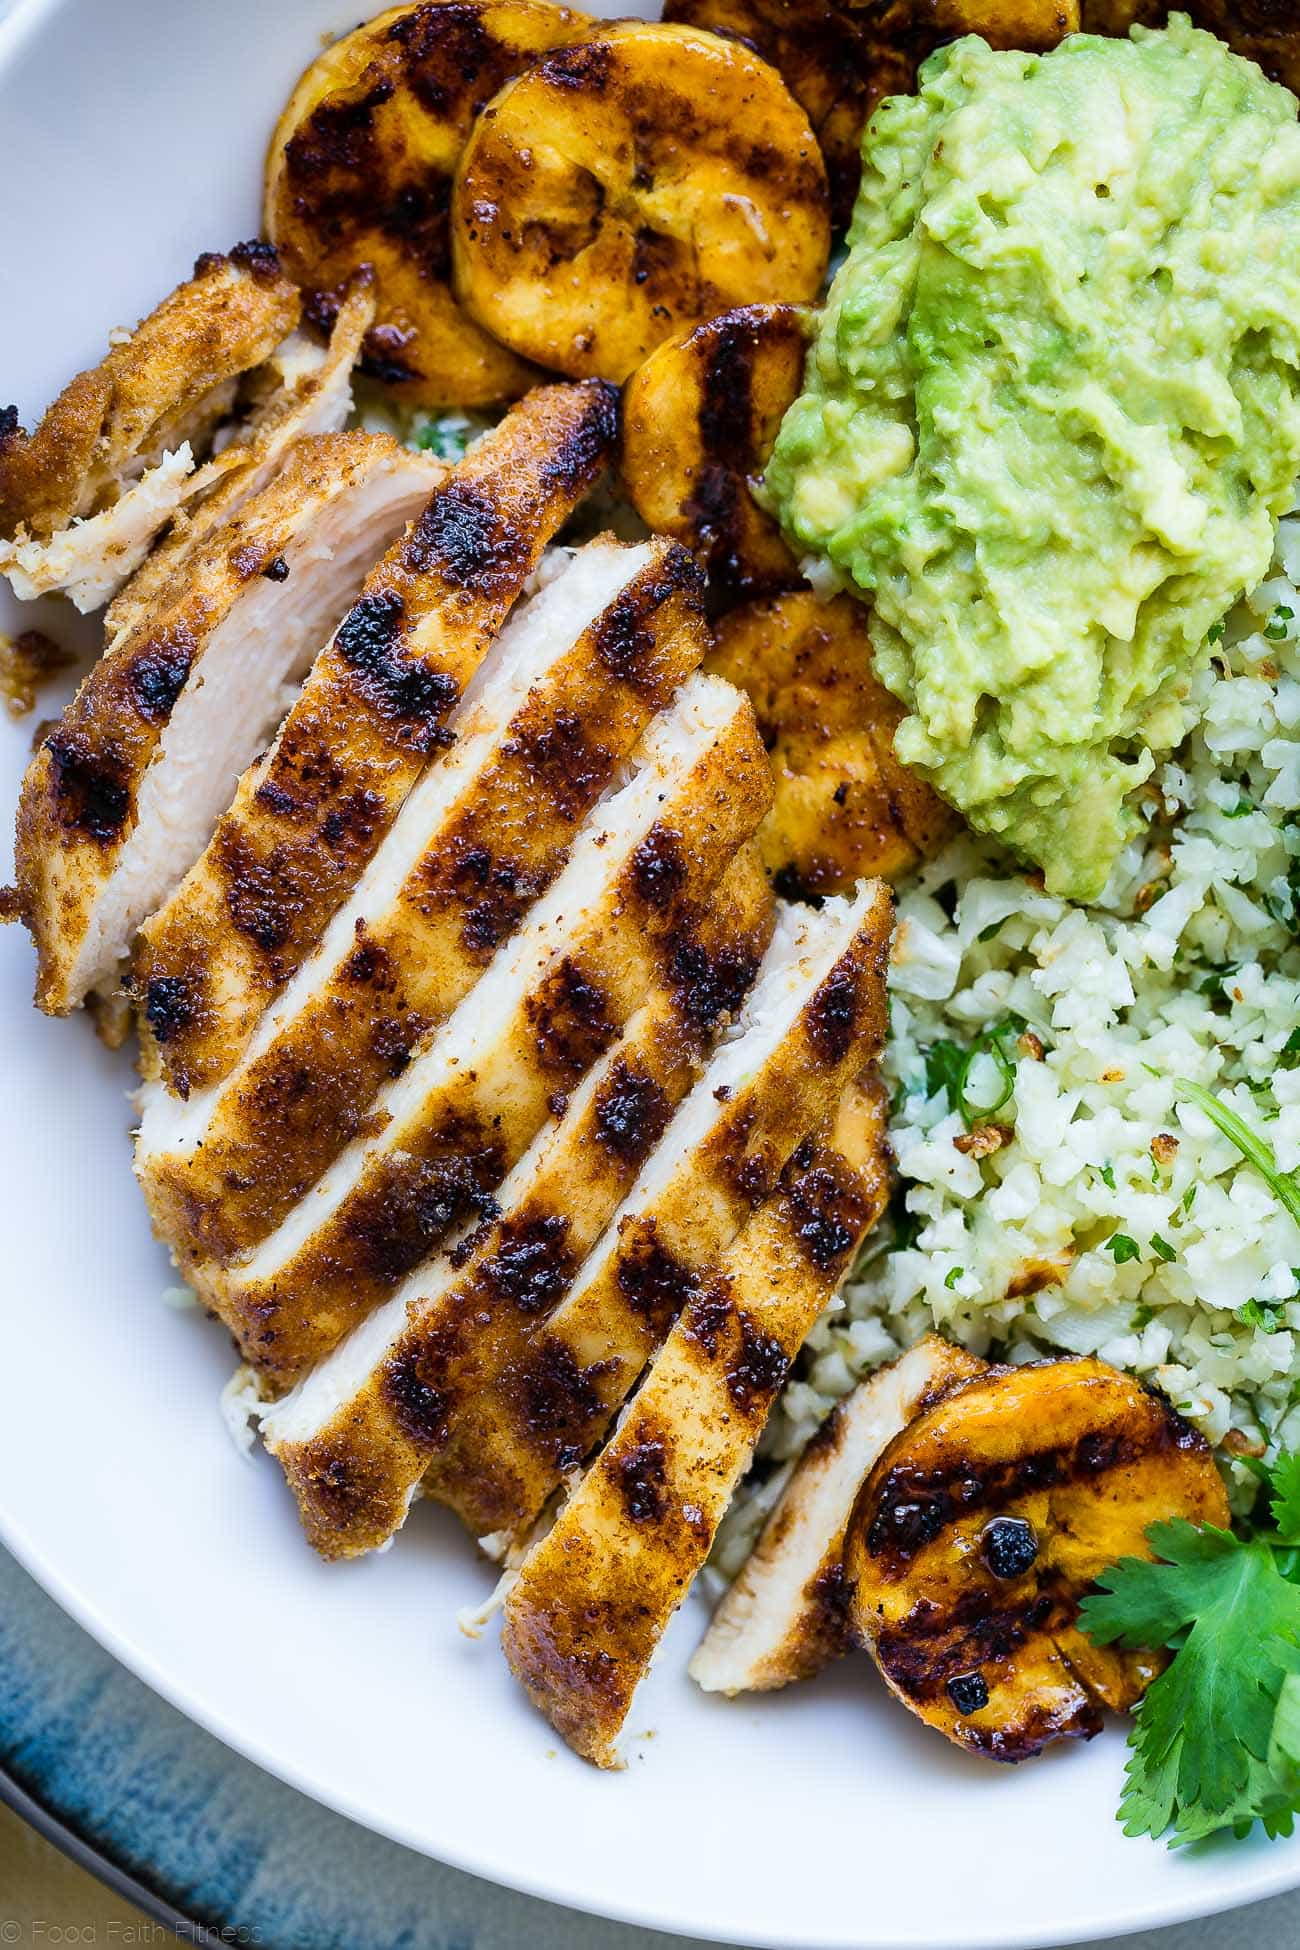 Caribbean Chicken Bowls - These paleo-friendly bowls have grilled plantains, cauliflower rice and avocado! A healthy, gluten free summer meal for under 500 calories! | #Foodfaithfitness | #Paleo #Glutenfree #Healthy #chickenrecipe